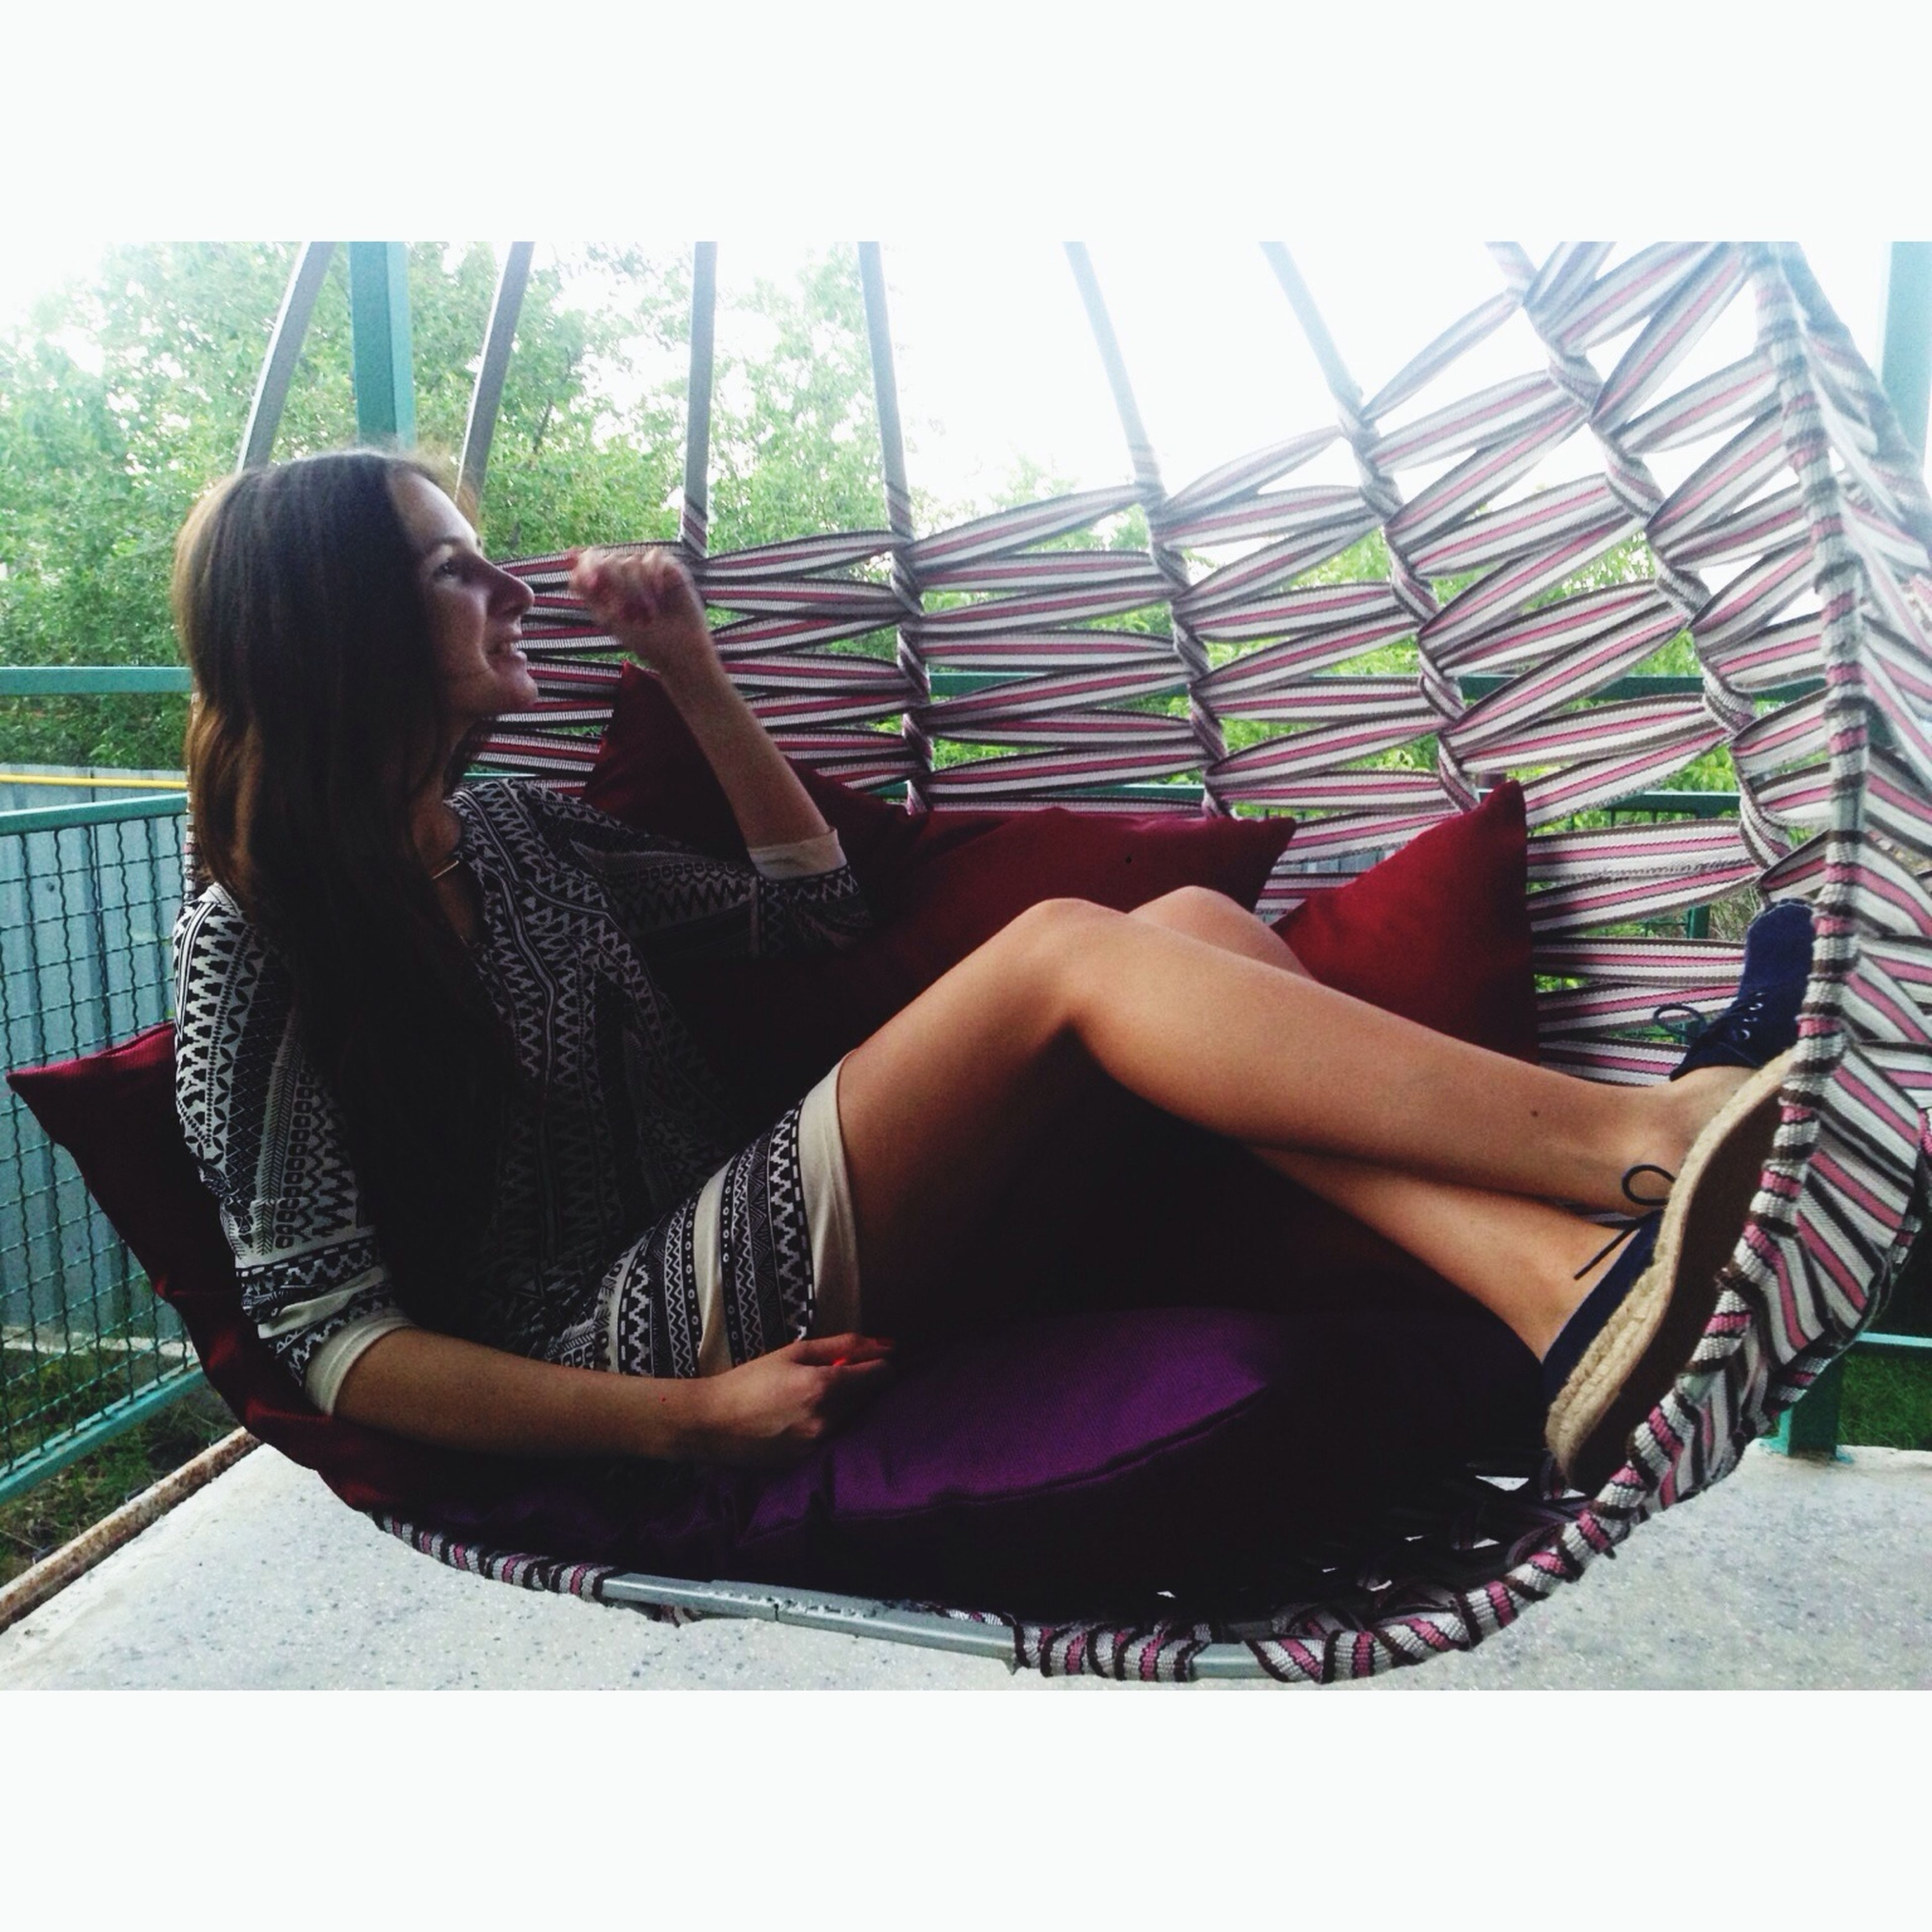 lifestyles, young adult, young women, relaxation, leisure activity, sitting, casual clothing, long hair, person, indoors, sensuality, railing, chair, full length, day, side view